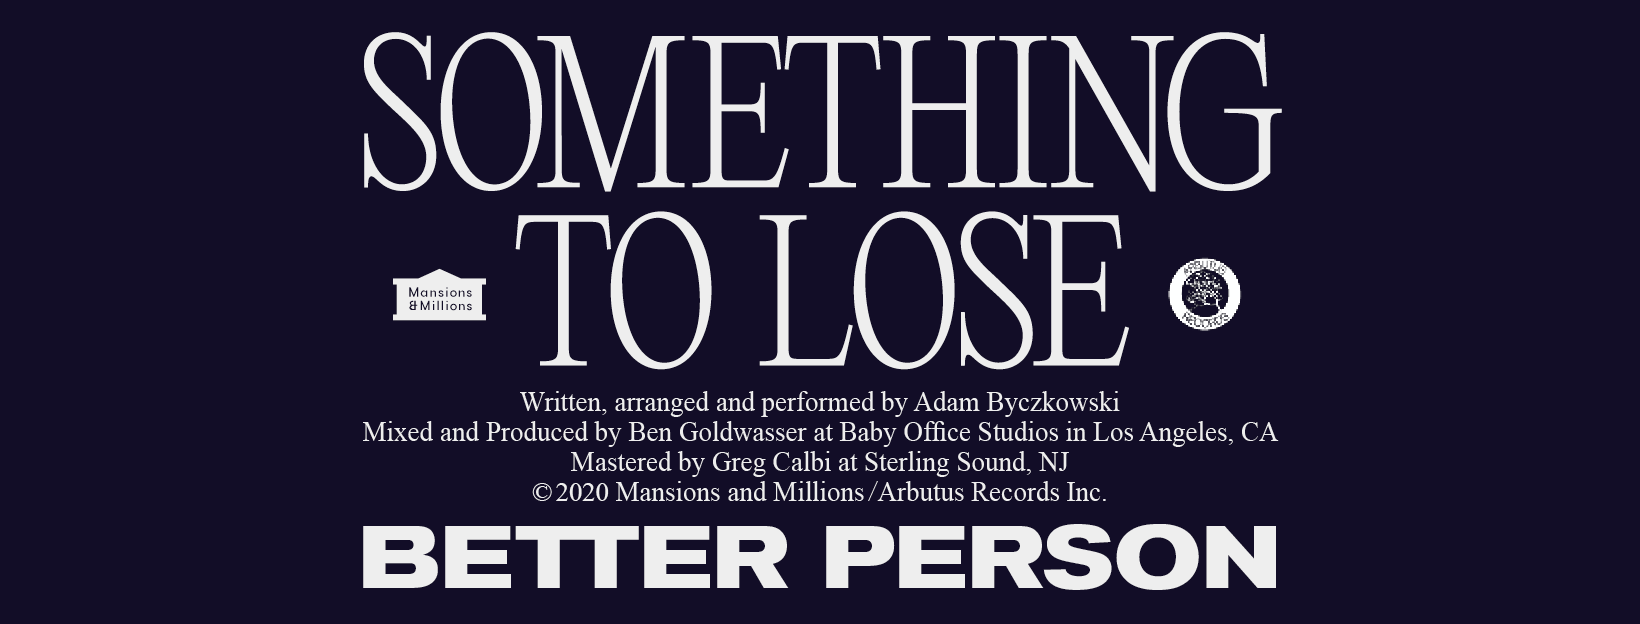 NEW RELEASE / BETTER PERSON // SOMETHING TO LOSE